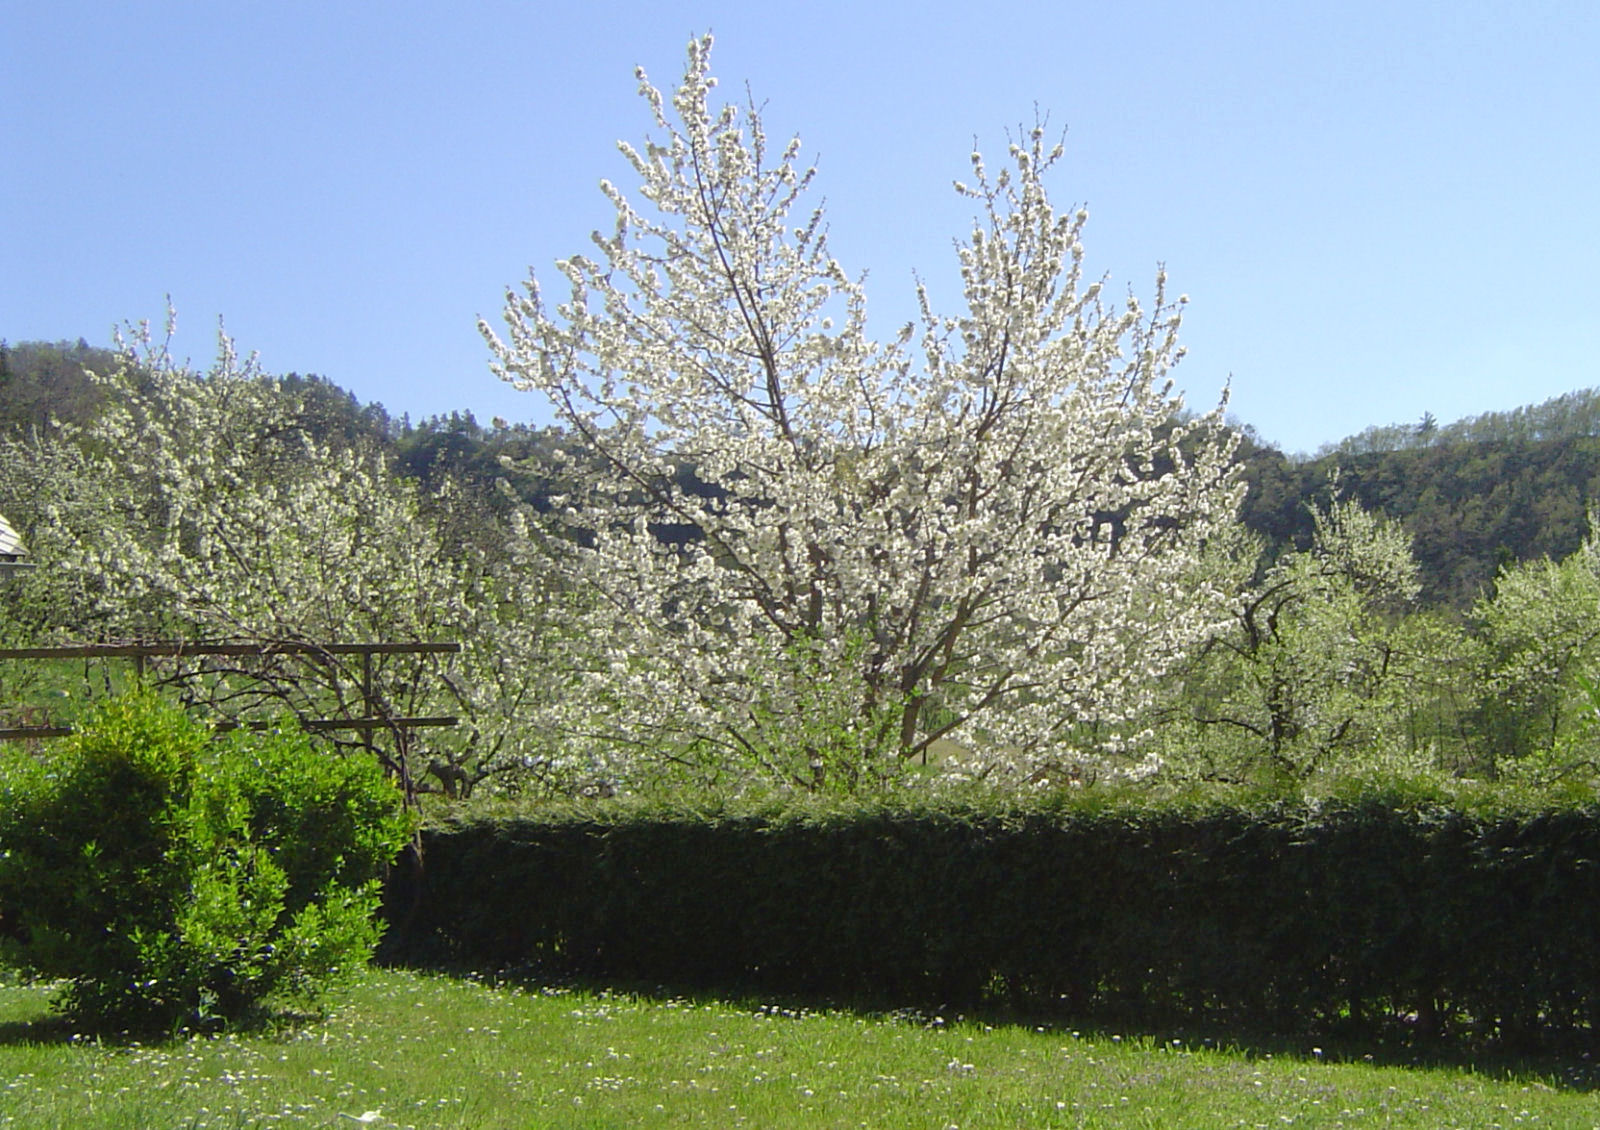 A cherry tree blooming in the spring